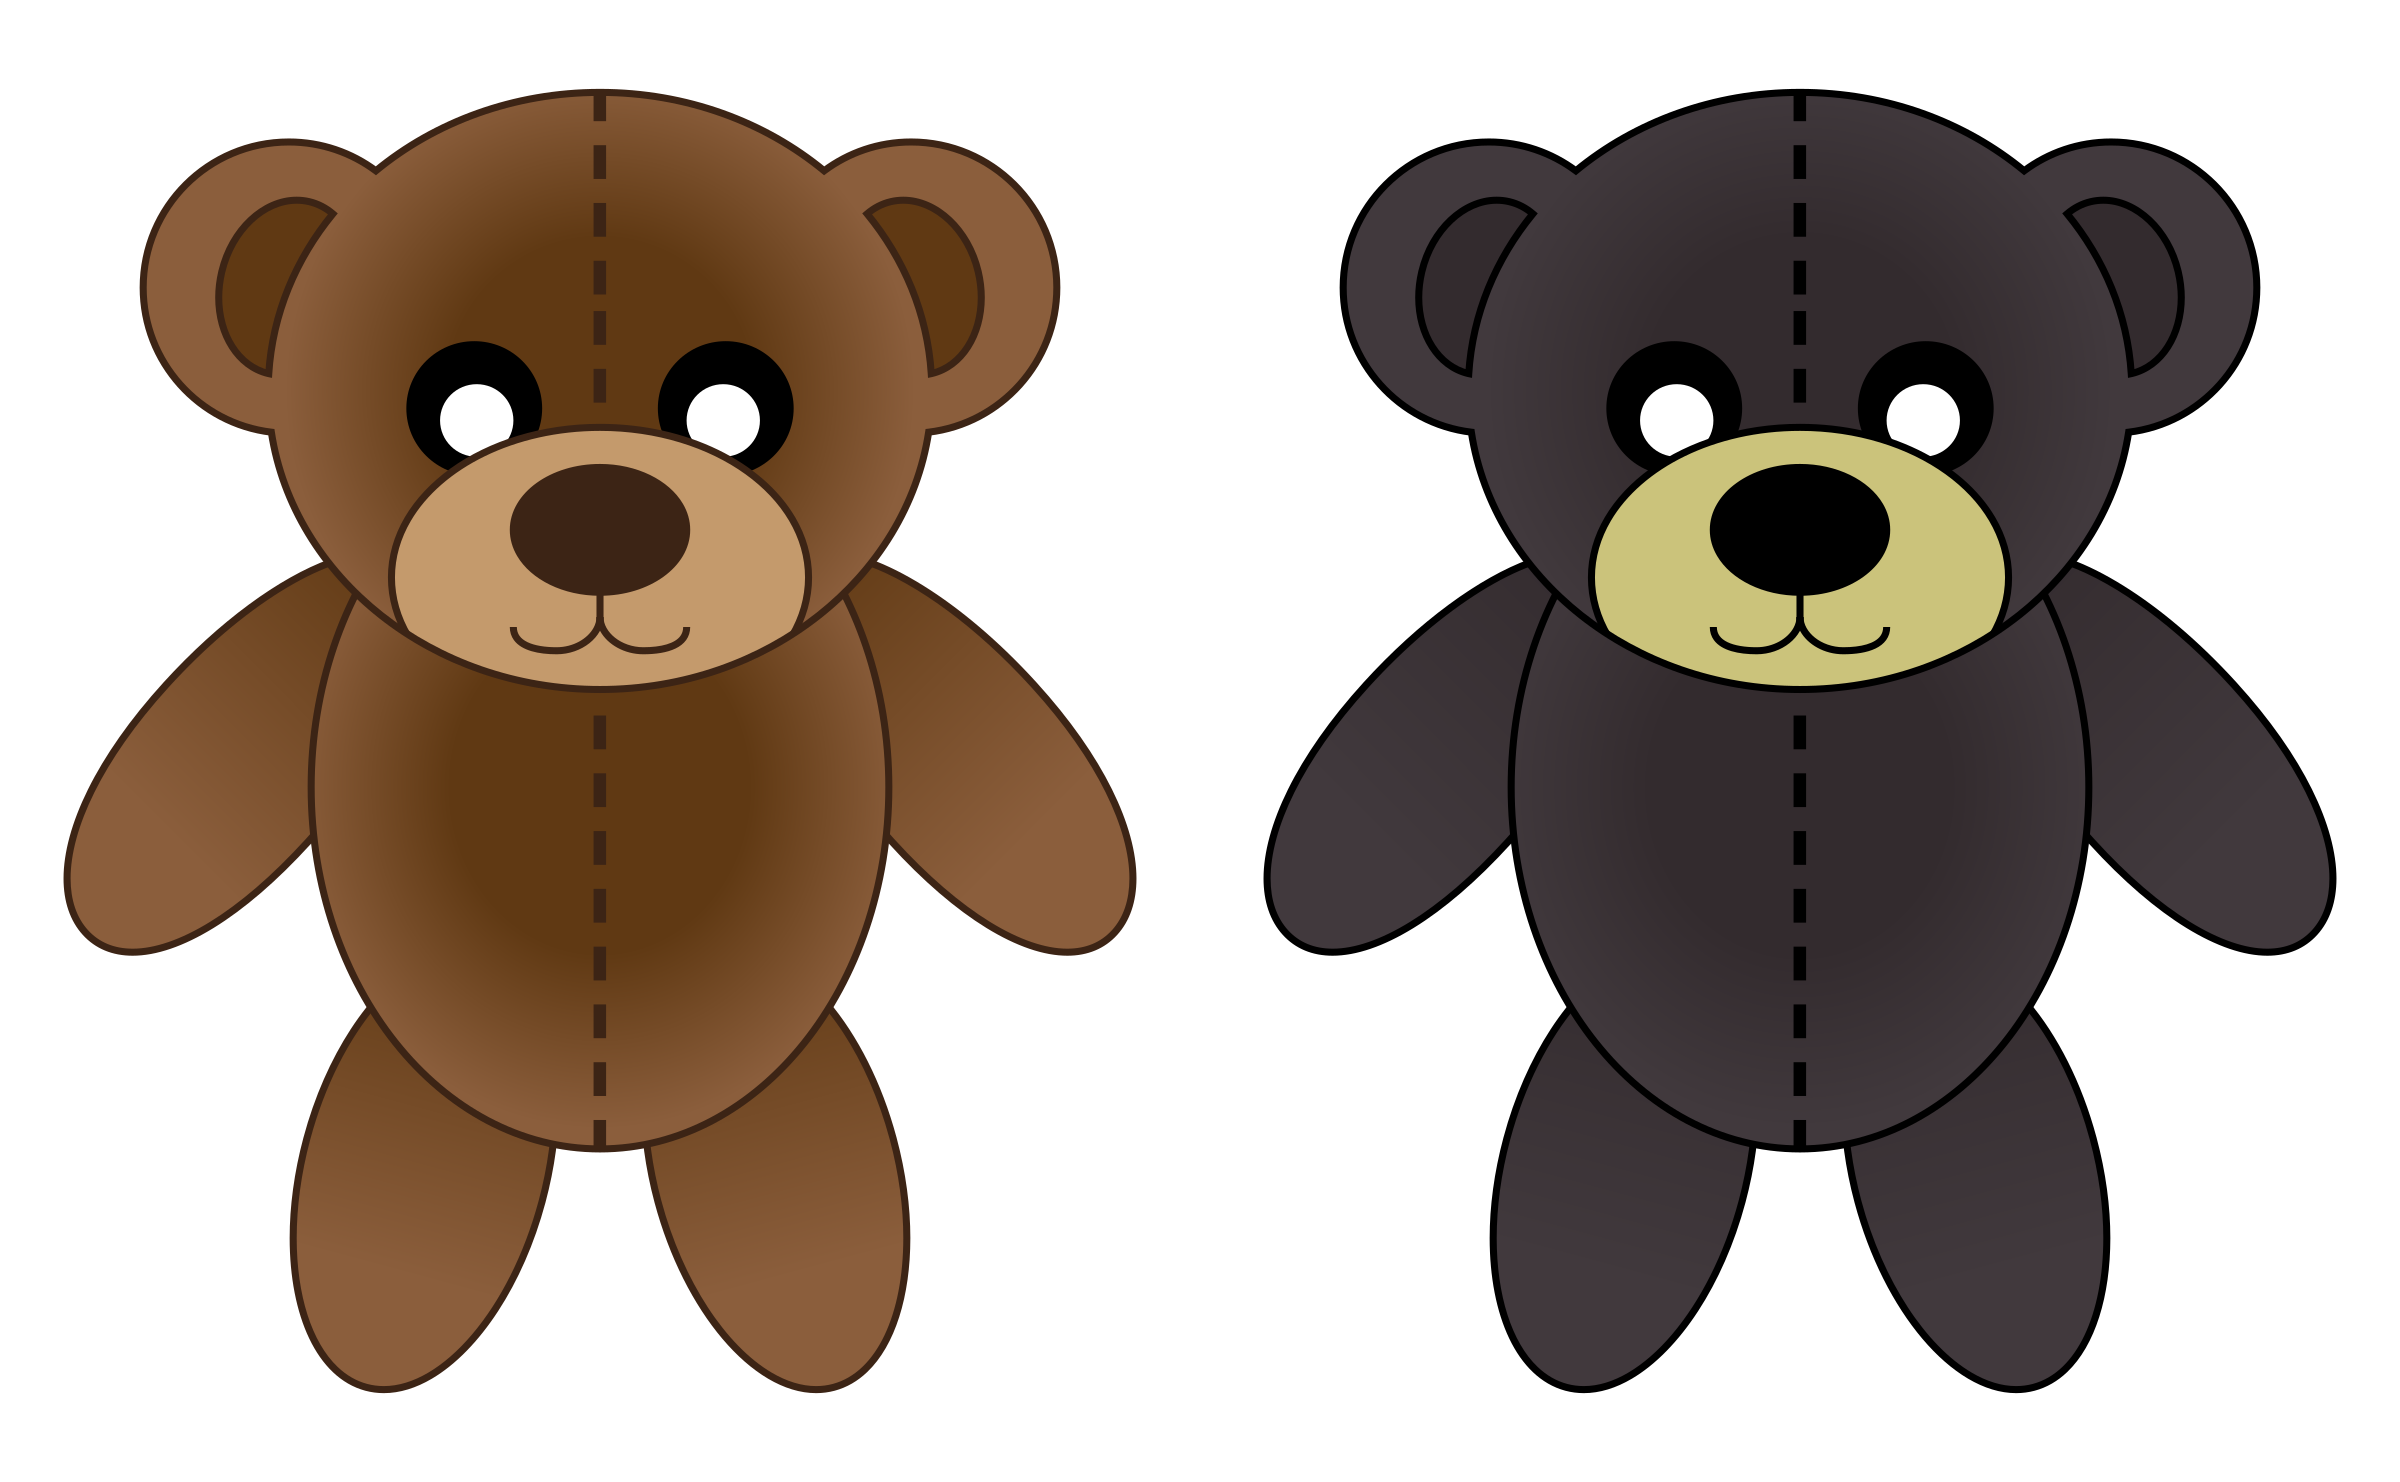 Plush bears by CLXVI